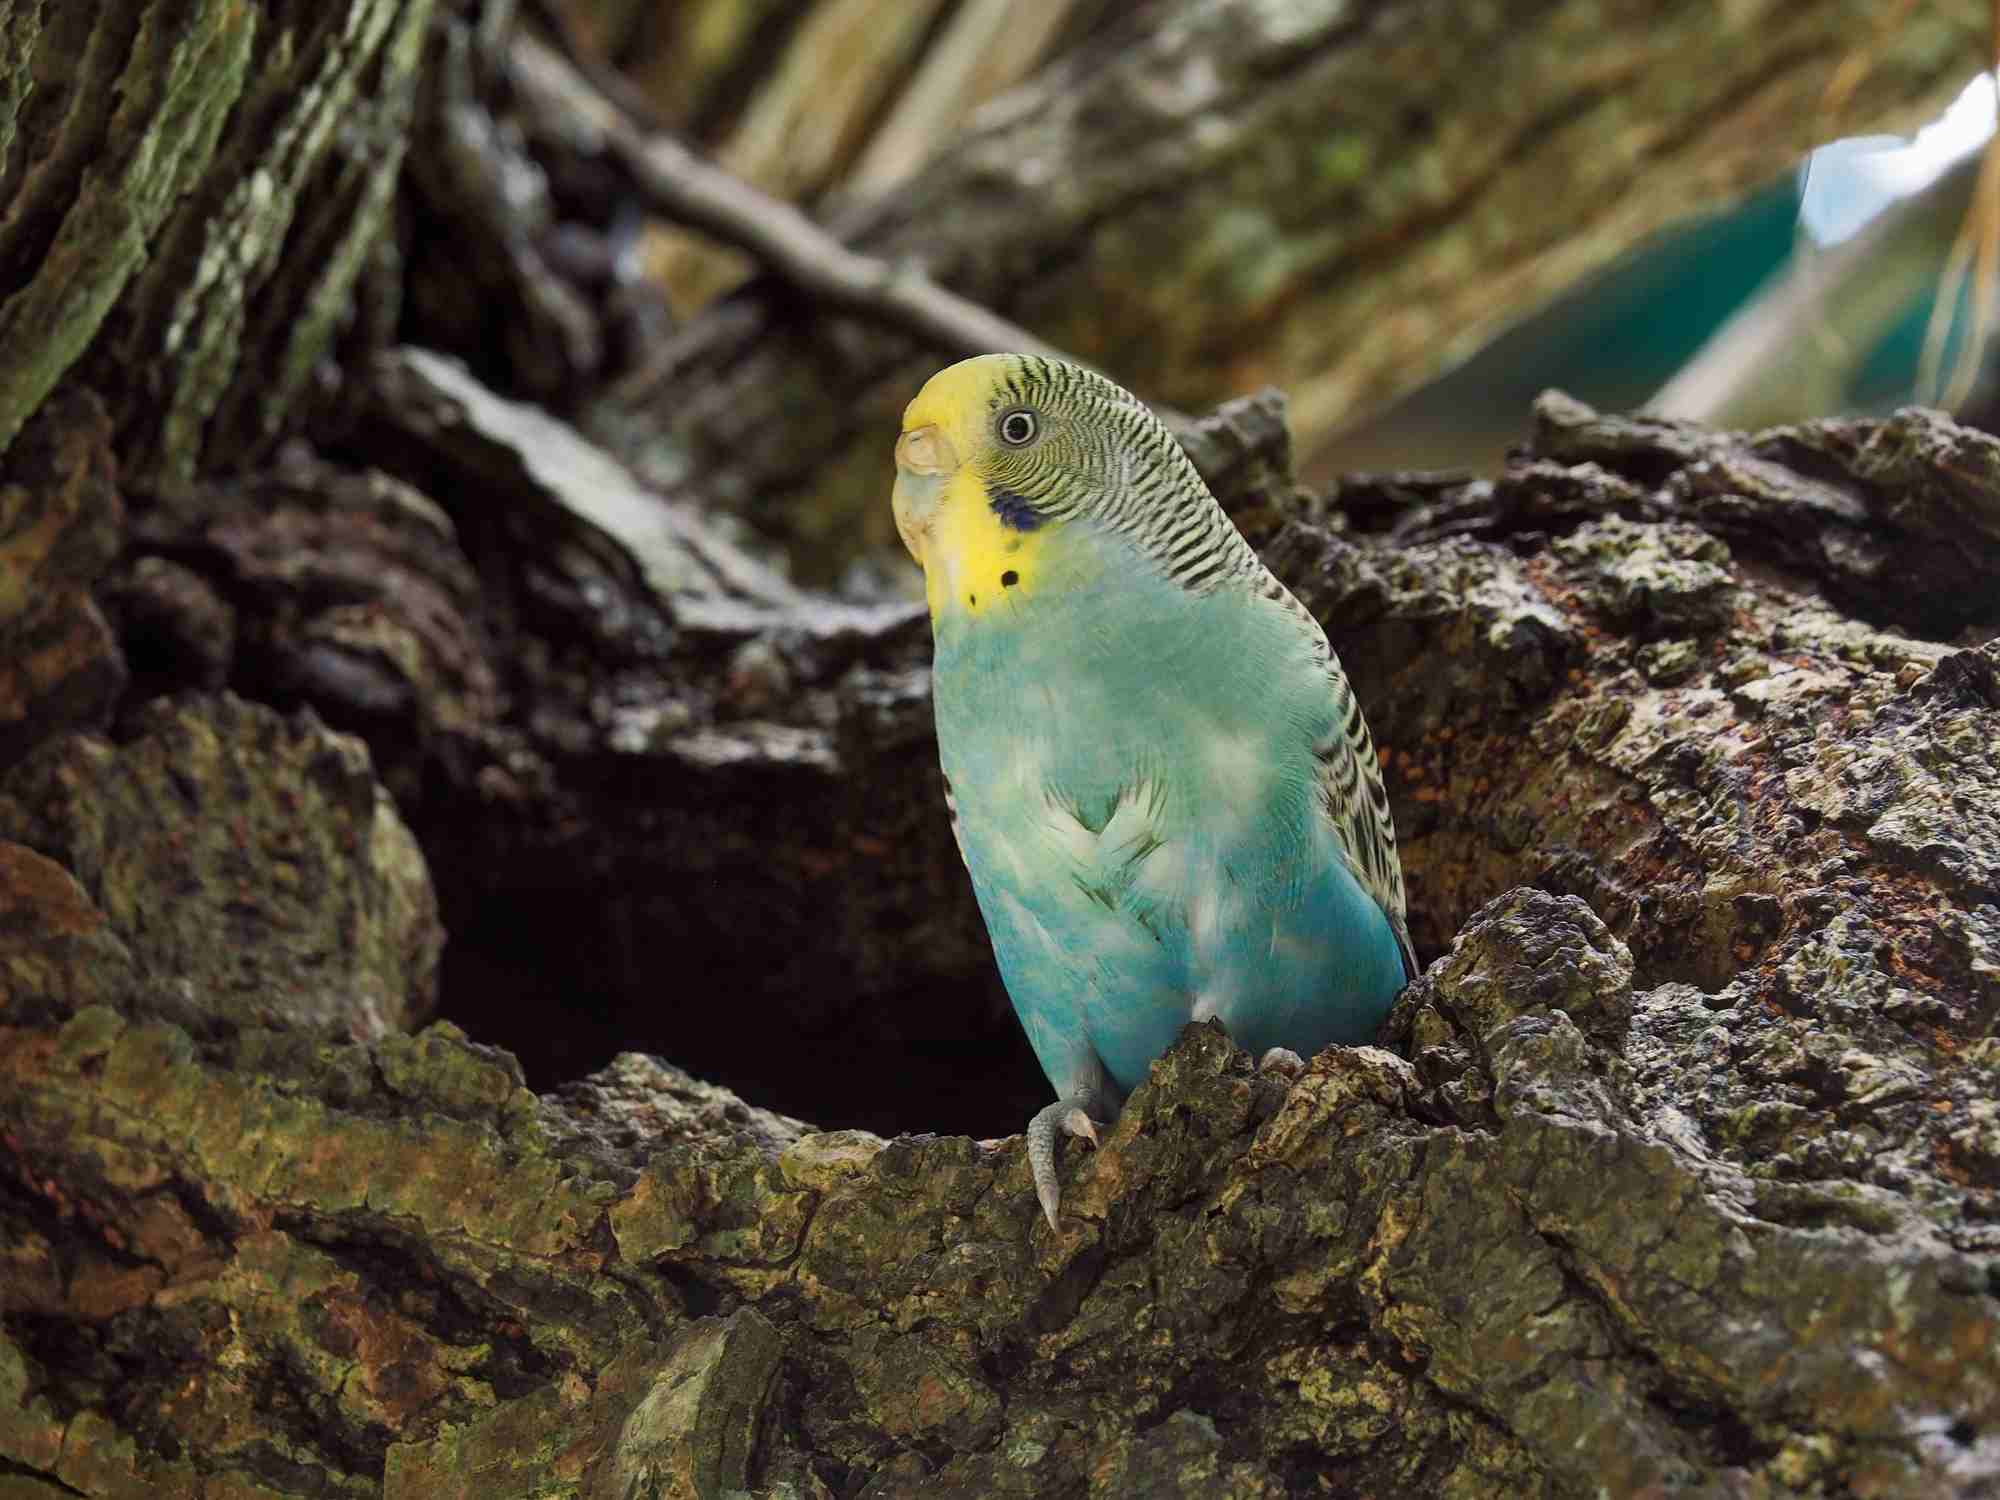 Budgerigar perched on a tree stump